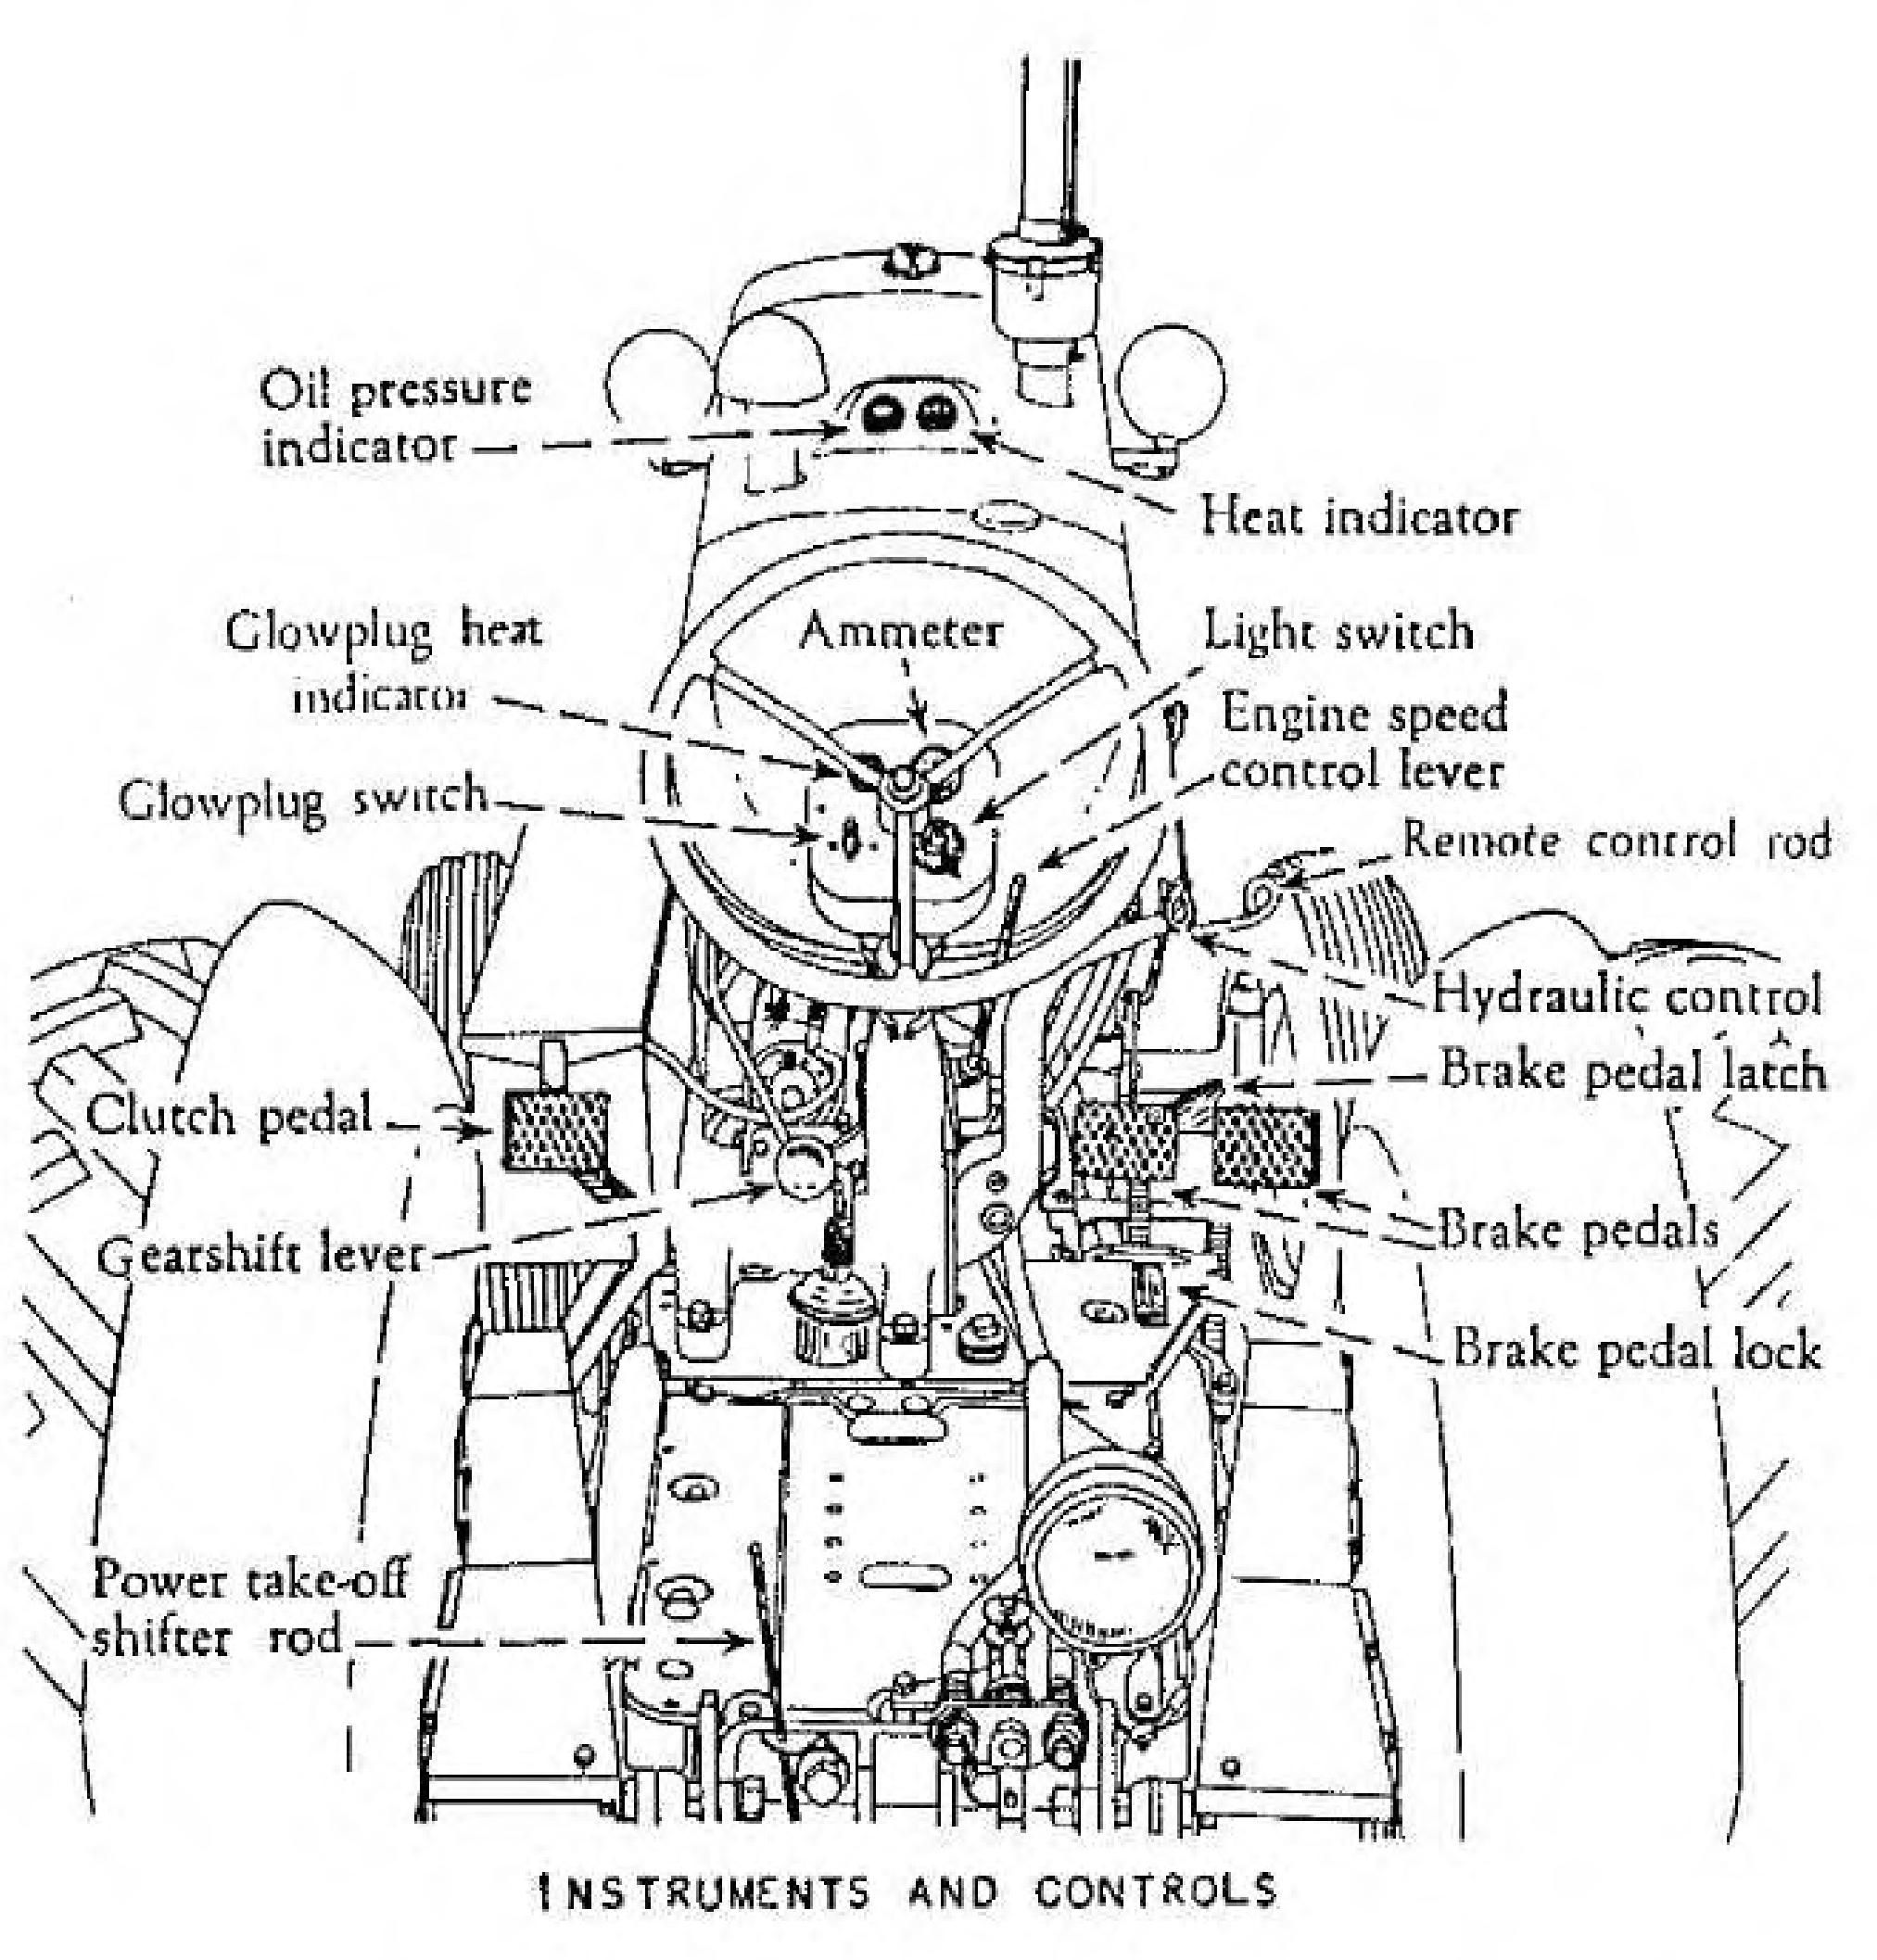 Get to know the controls of the AWD6 tractor Inter manuals